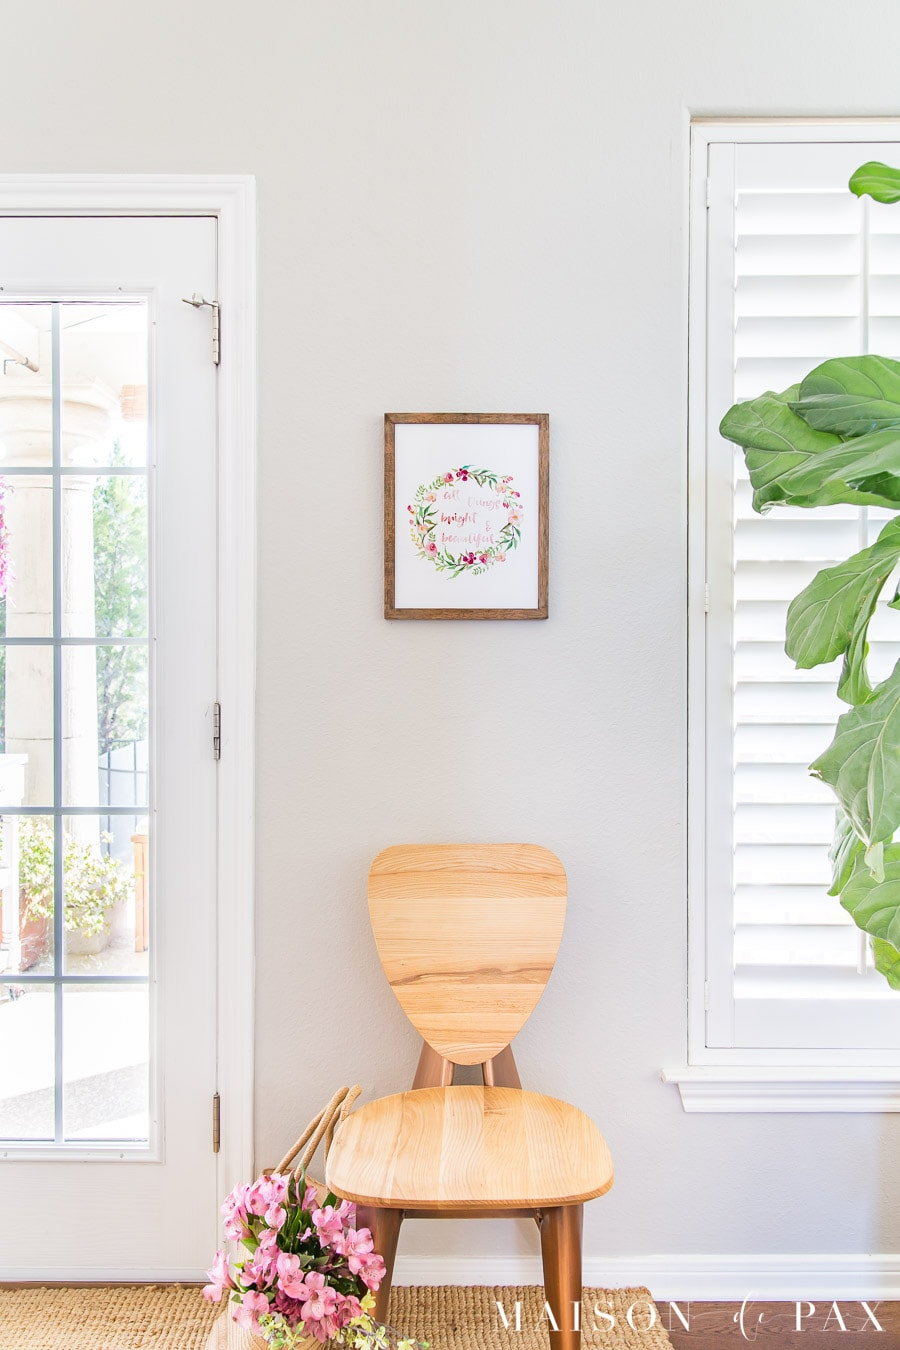 light wood chair with watercolor wall art above | Maison de Pax